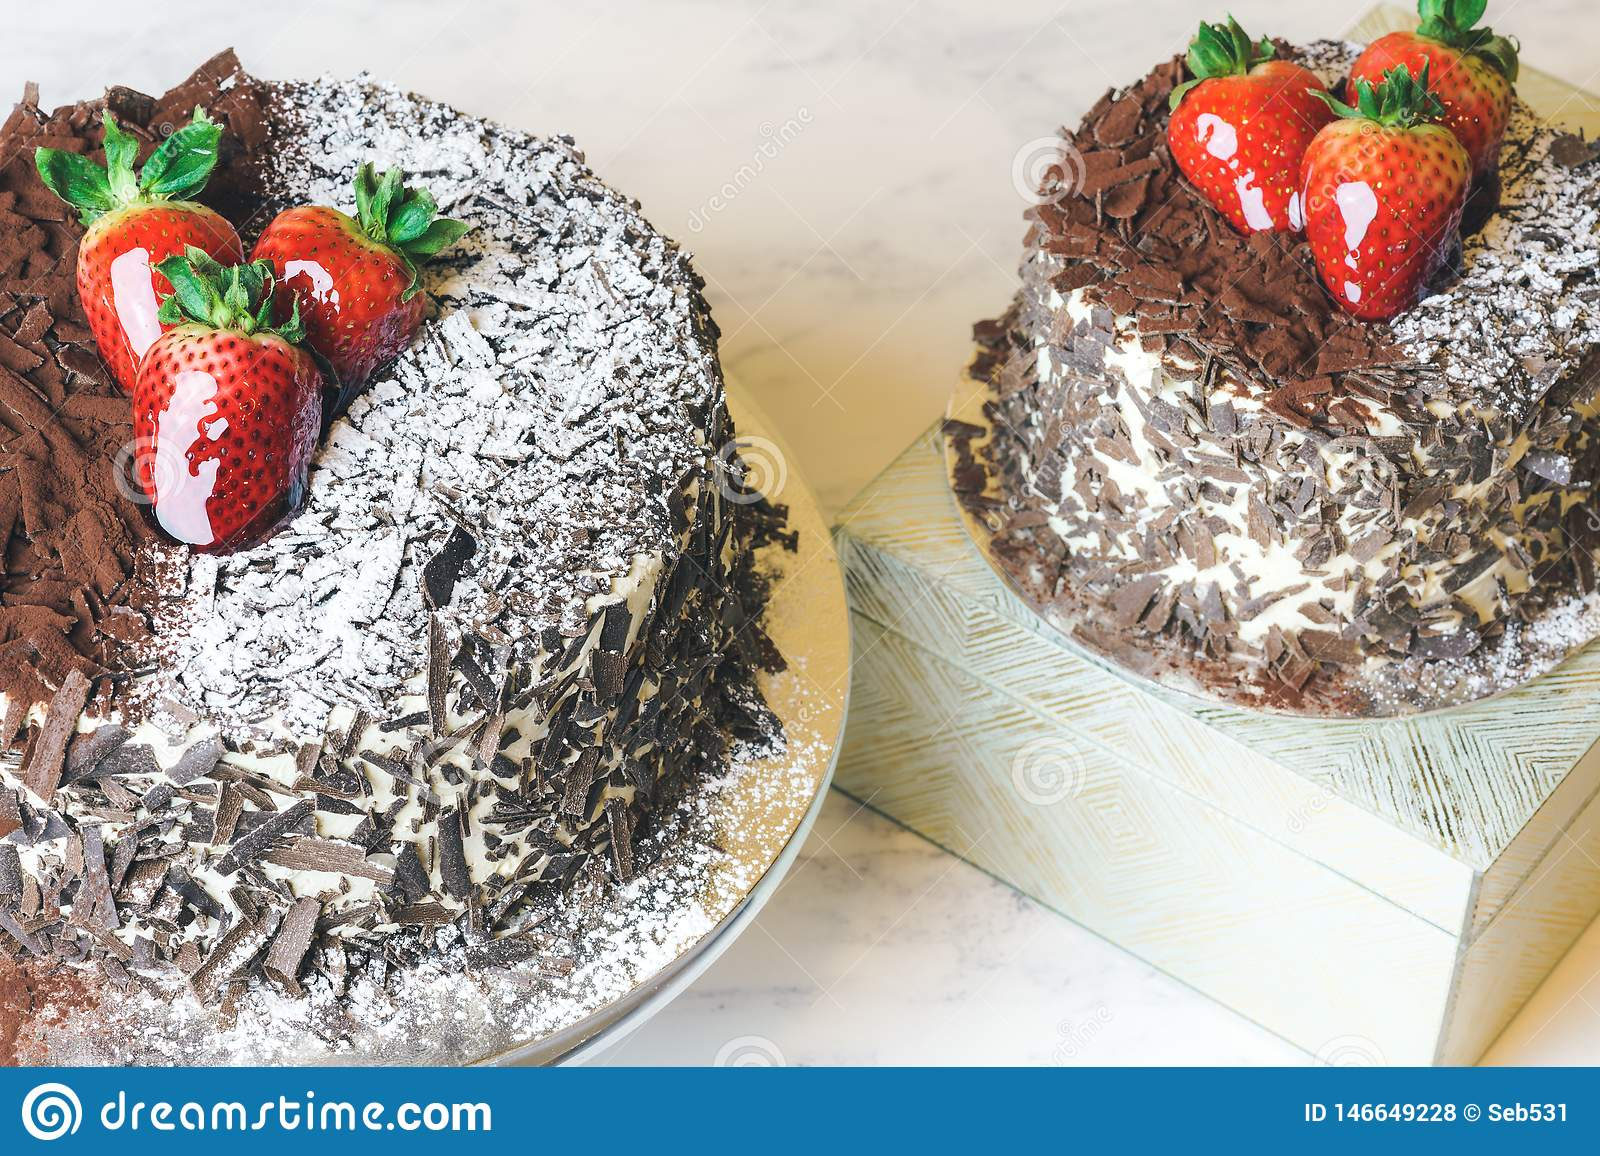 Black Forest Cake. Schwarzwald Torte with Chocolate and Strawberry